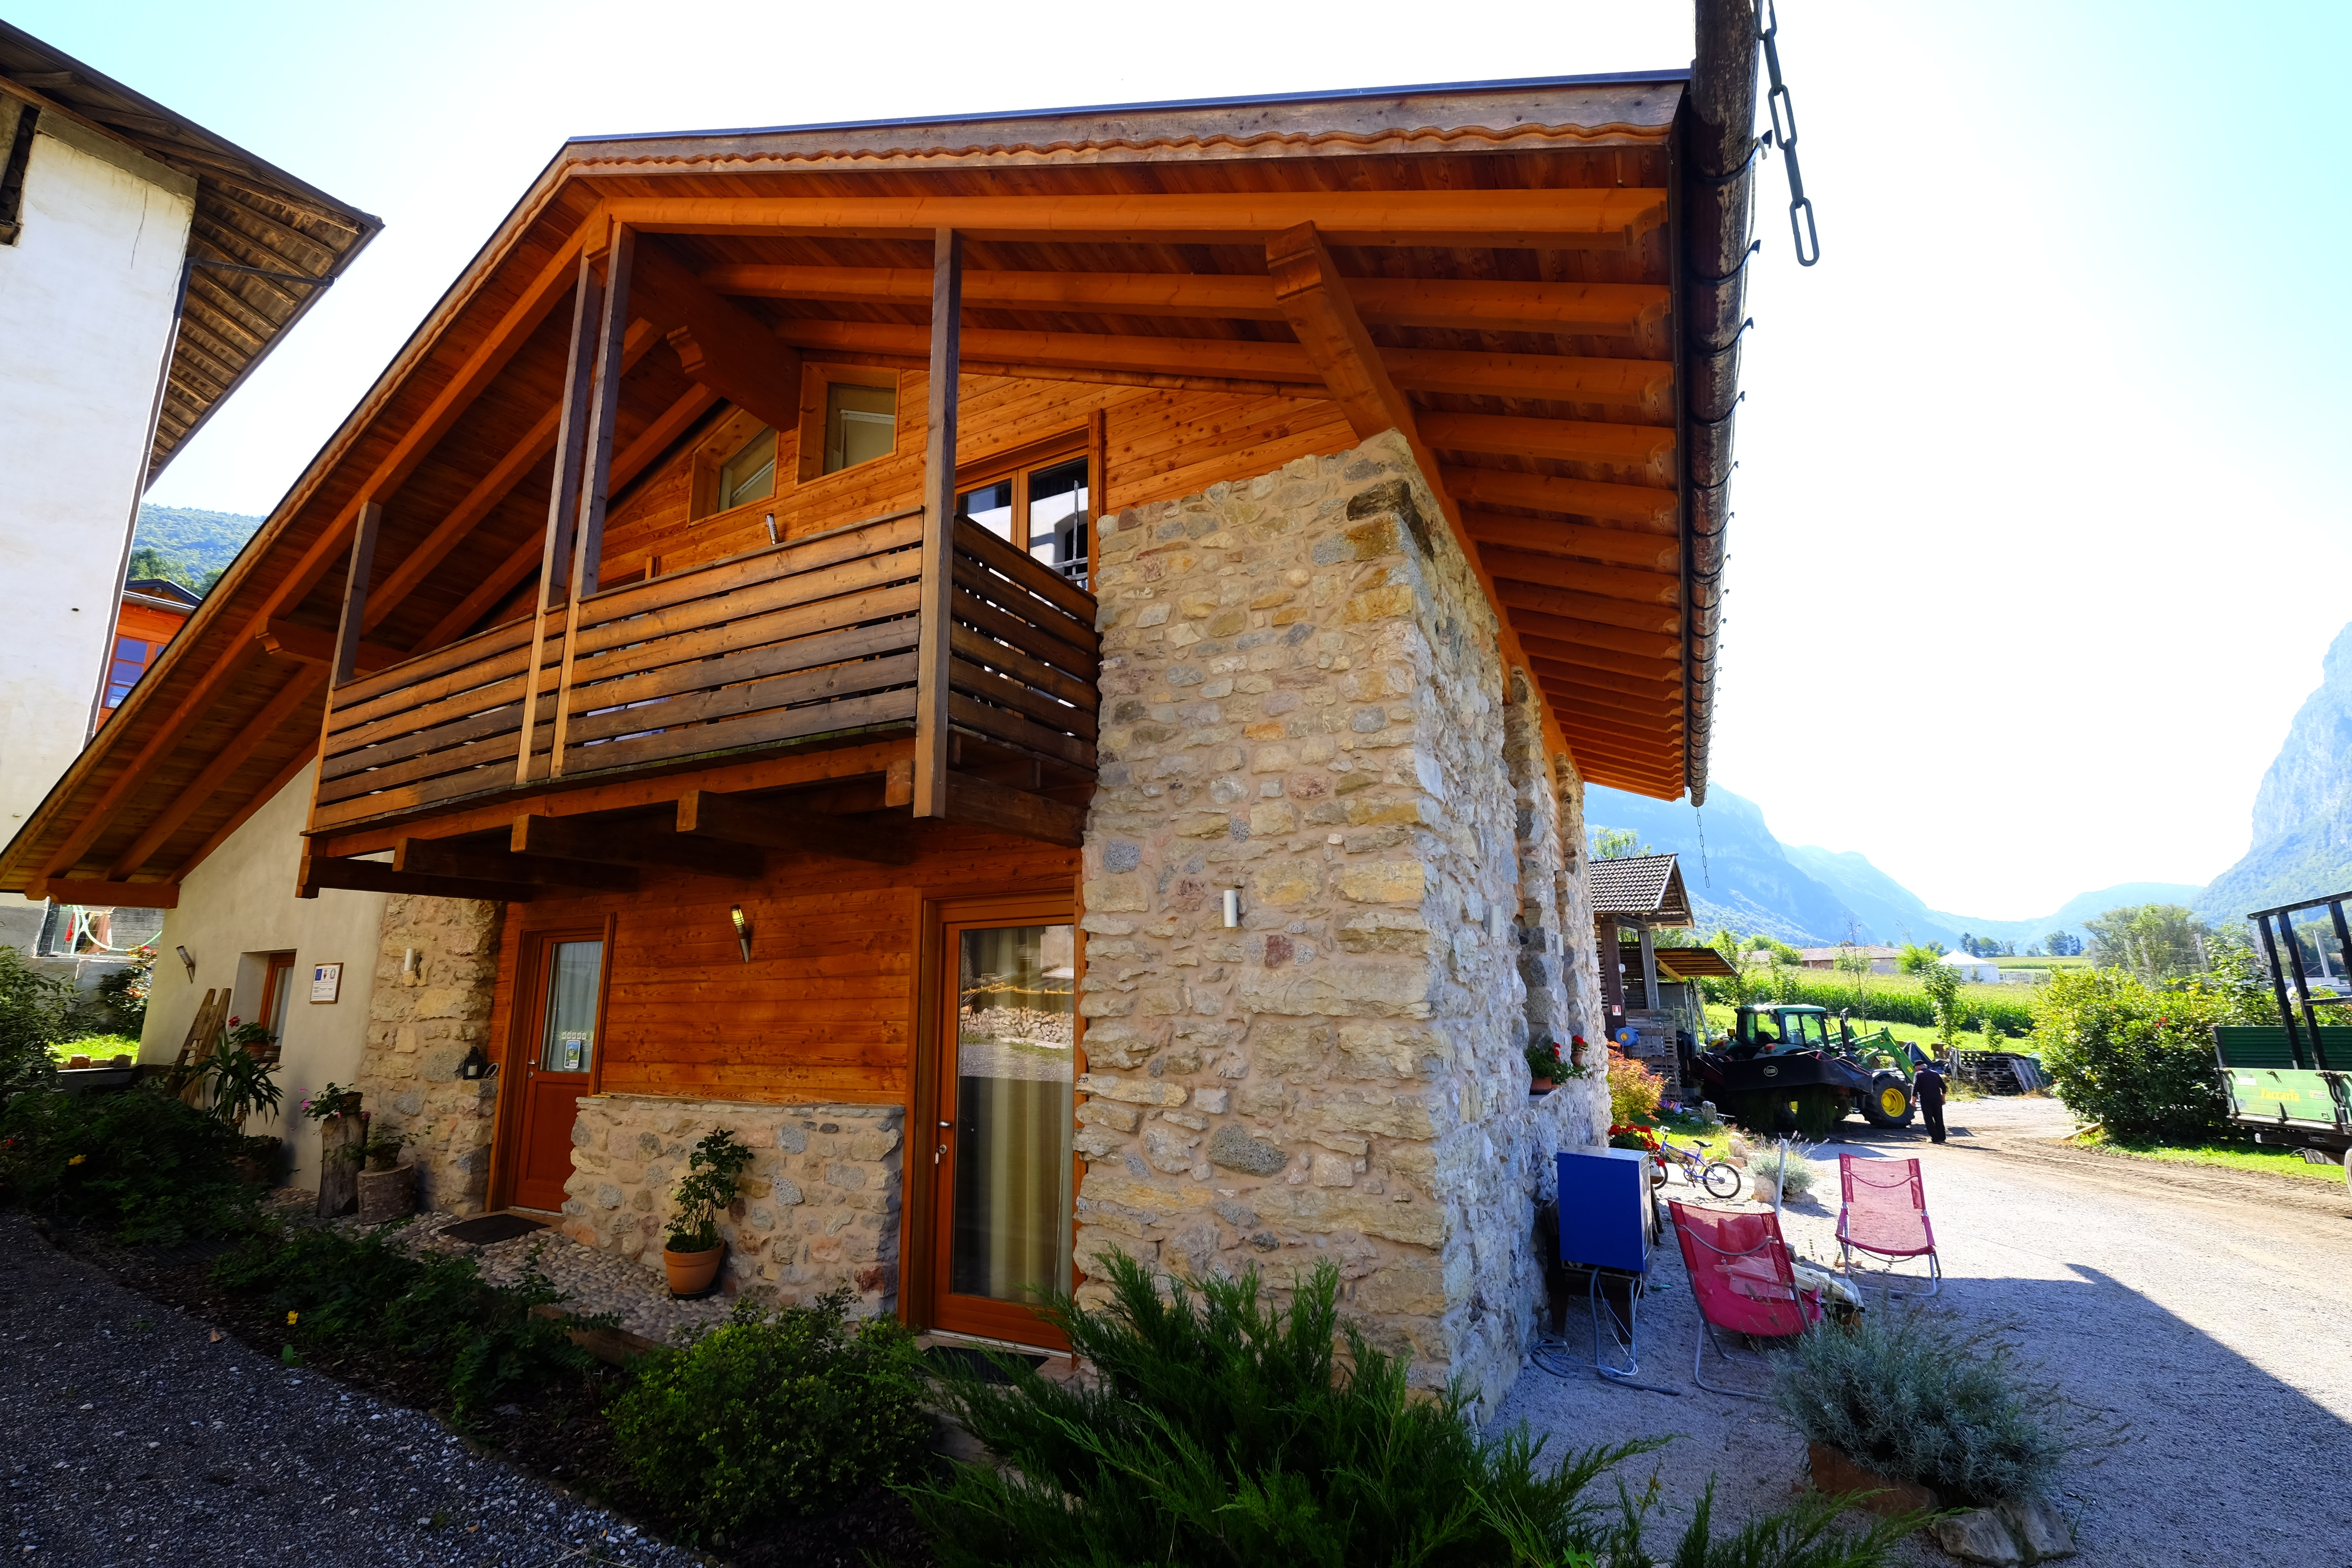 Agritur Maso Caianao, your eco-friendly holiday in Trentino, Italy